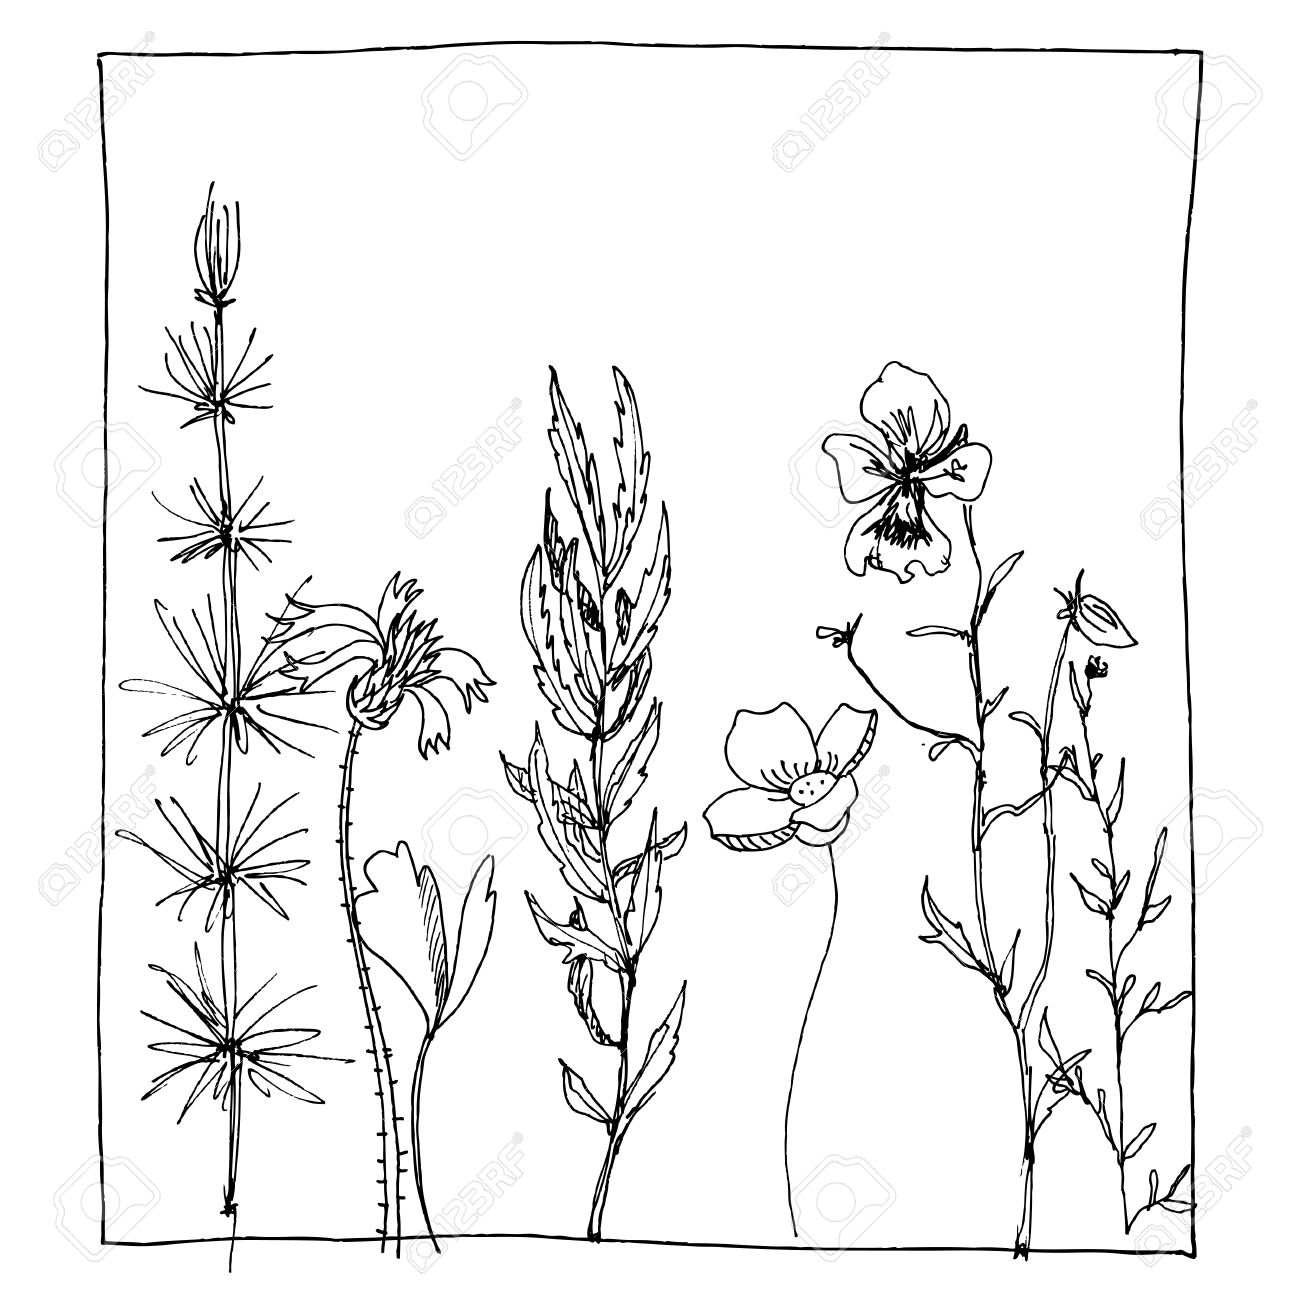 1300x1300 Floral Composition With Ink Drawing Herbs And Flowers In